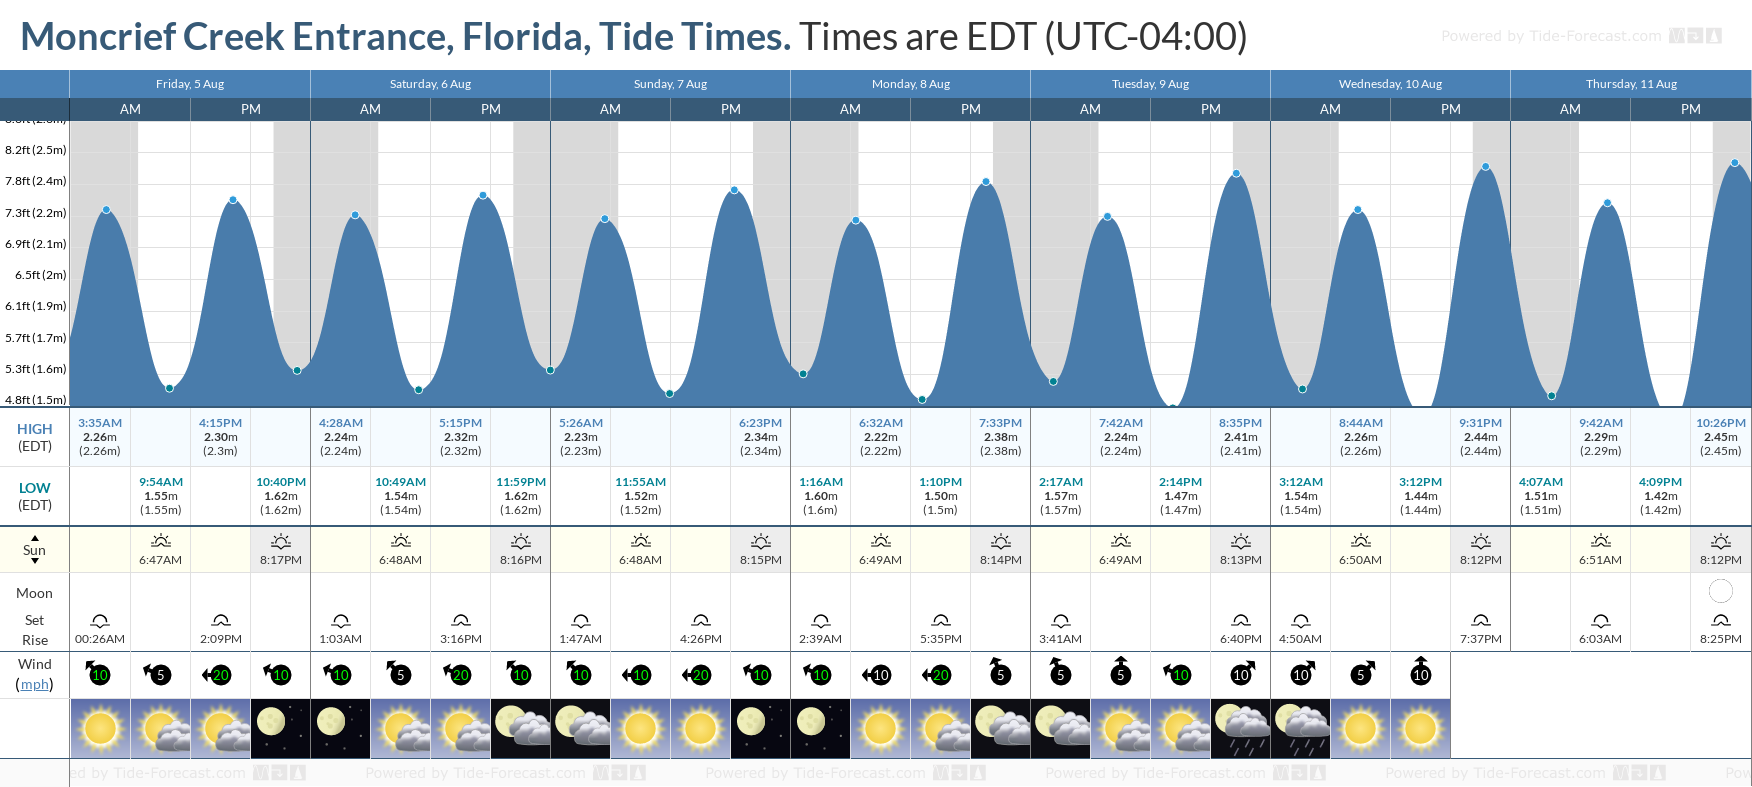 Moncrief Creek Entrance, Florida Tide Chart including high and low tide tide times for the next 7 days